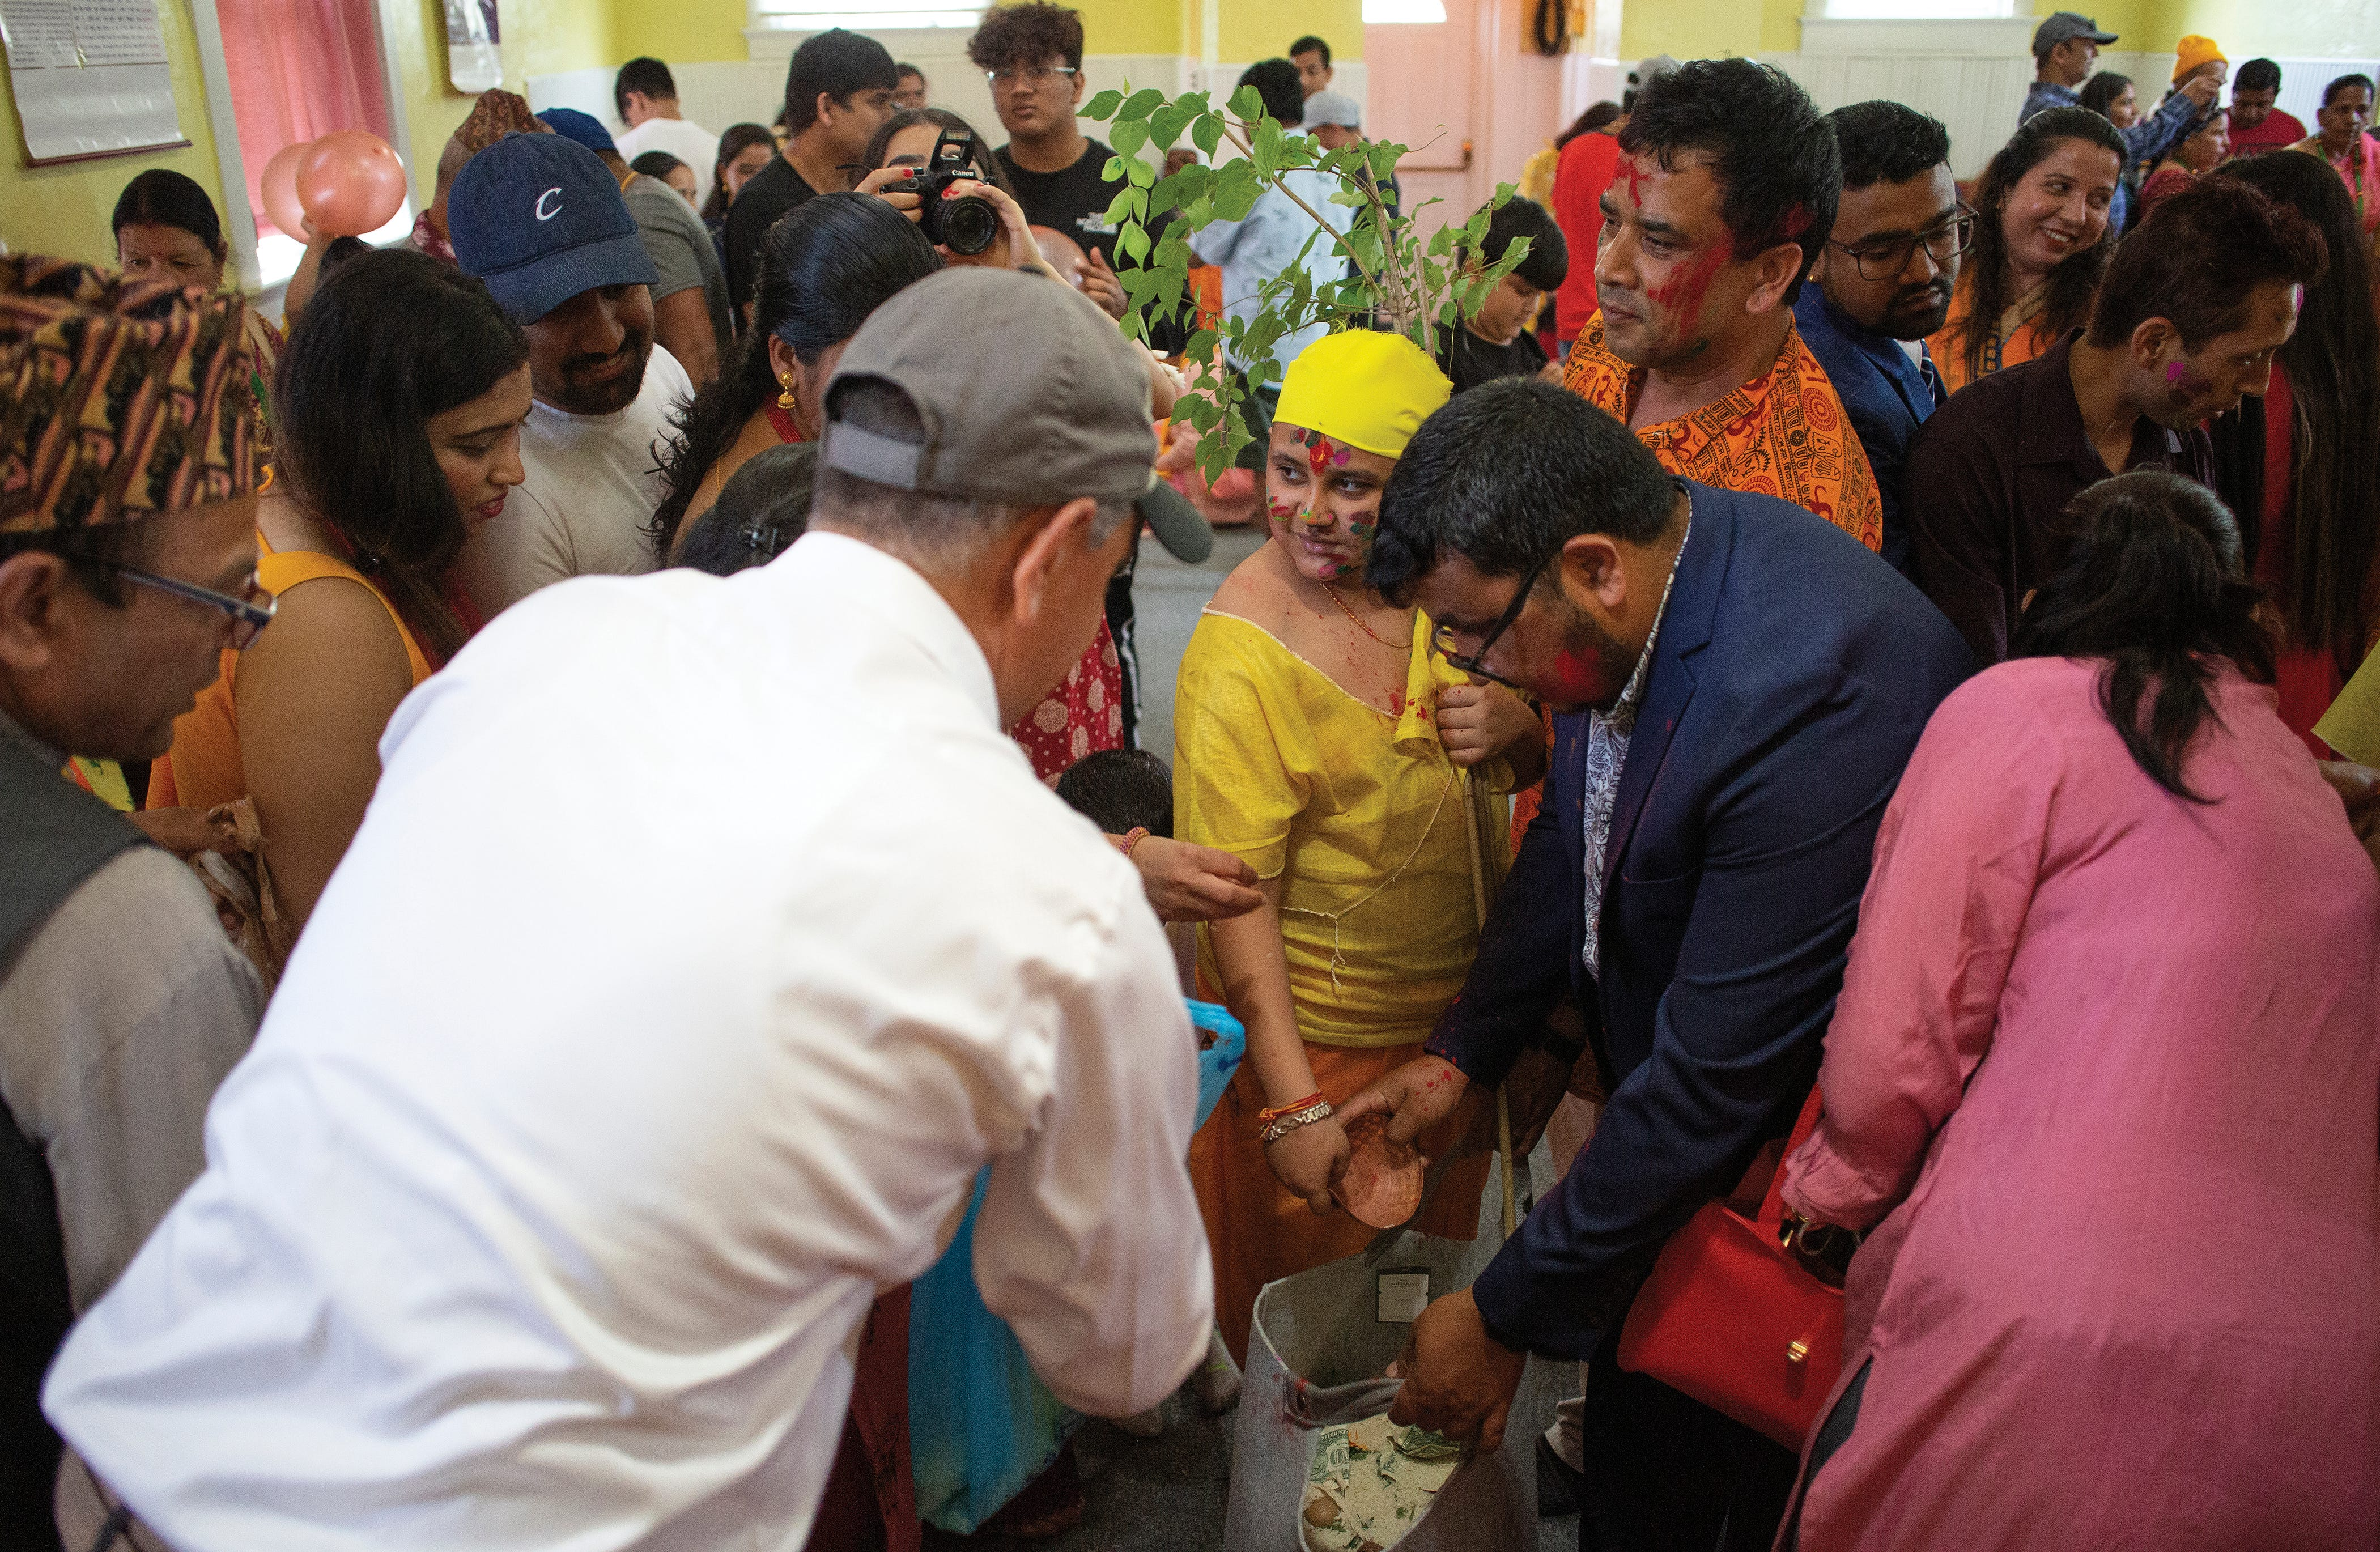 Ram Upreti offers rice and other good for a youngster going through a Threading Ceremony.